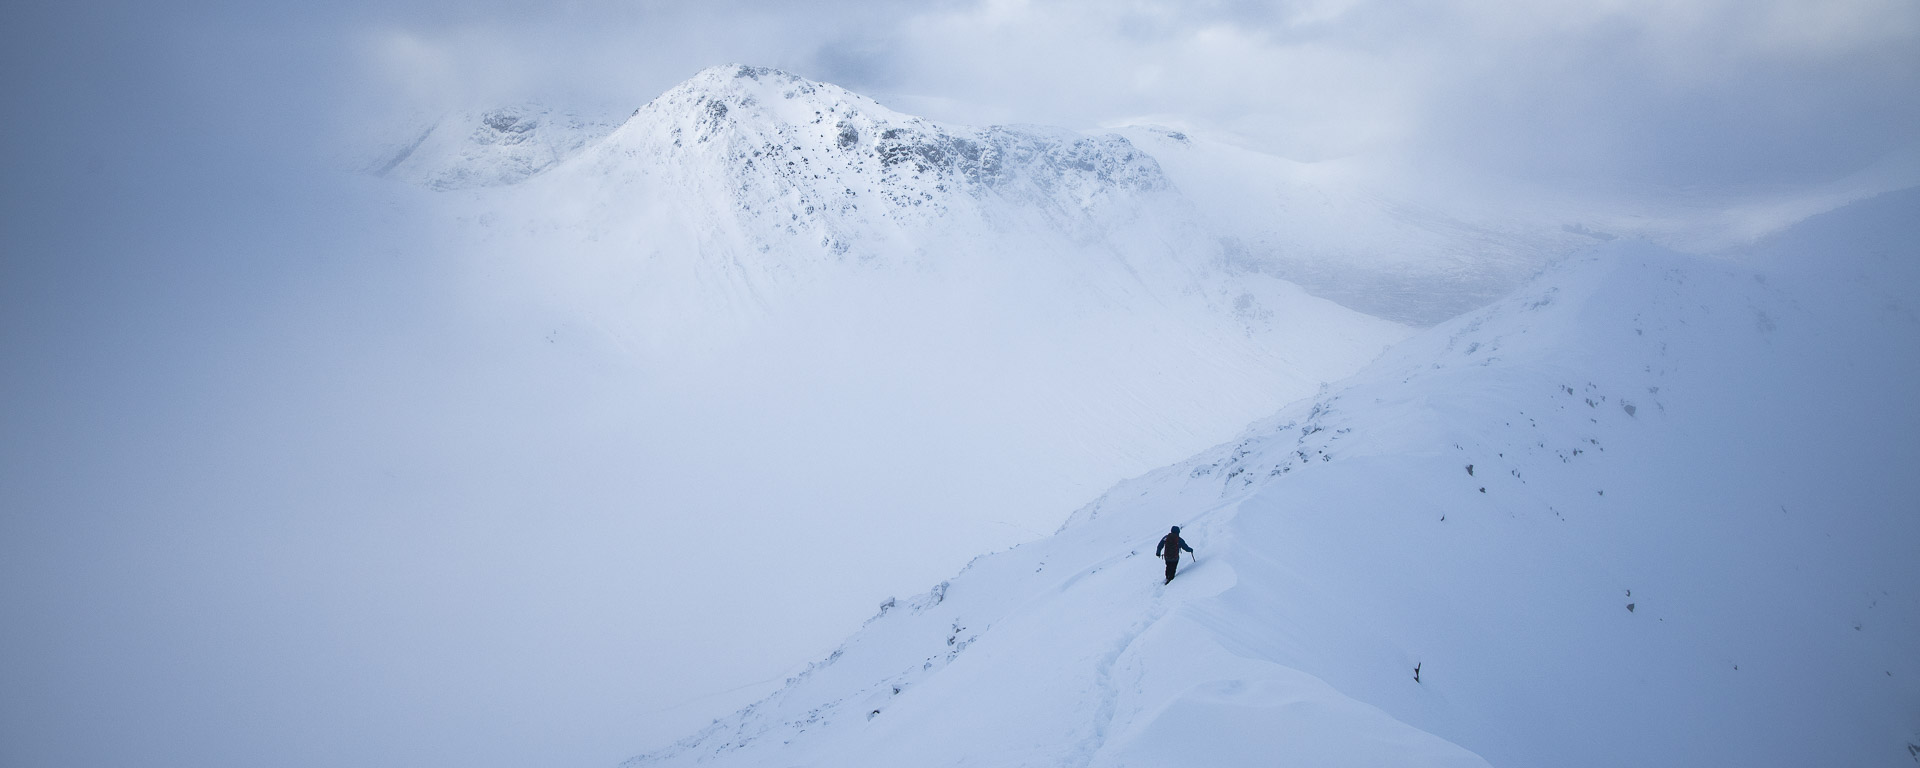 Winter Adventures in Glencoe, man in Blizzard